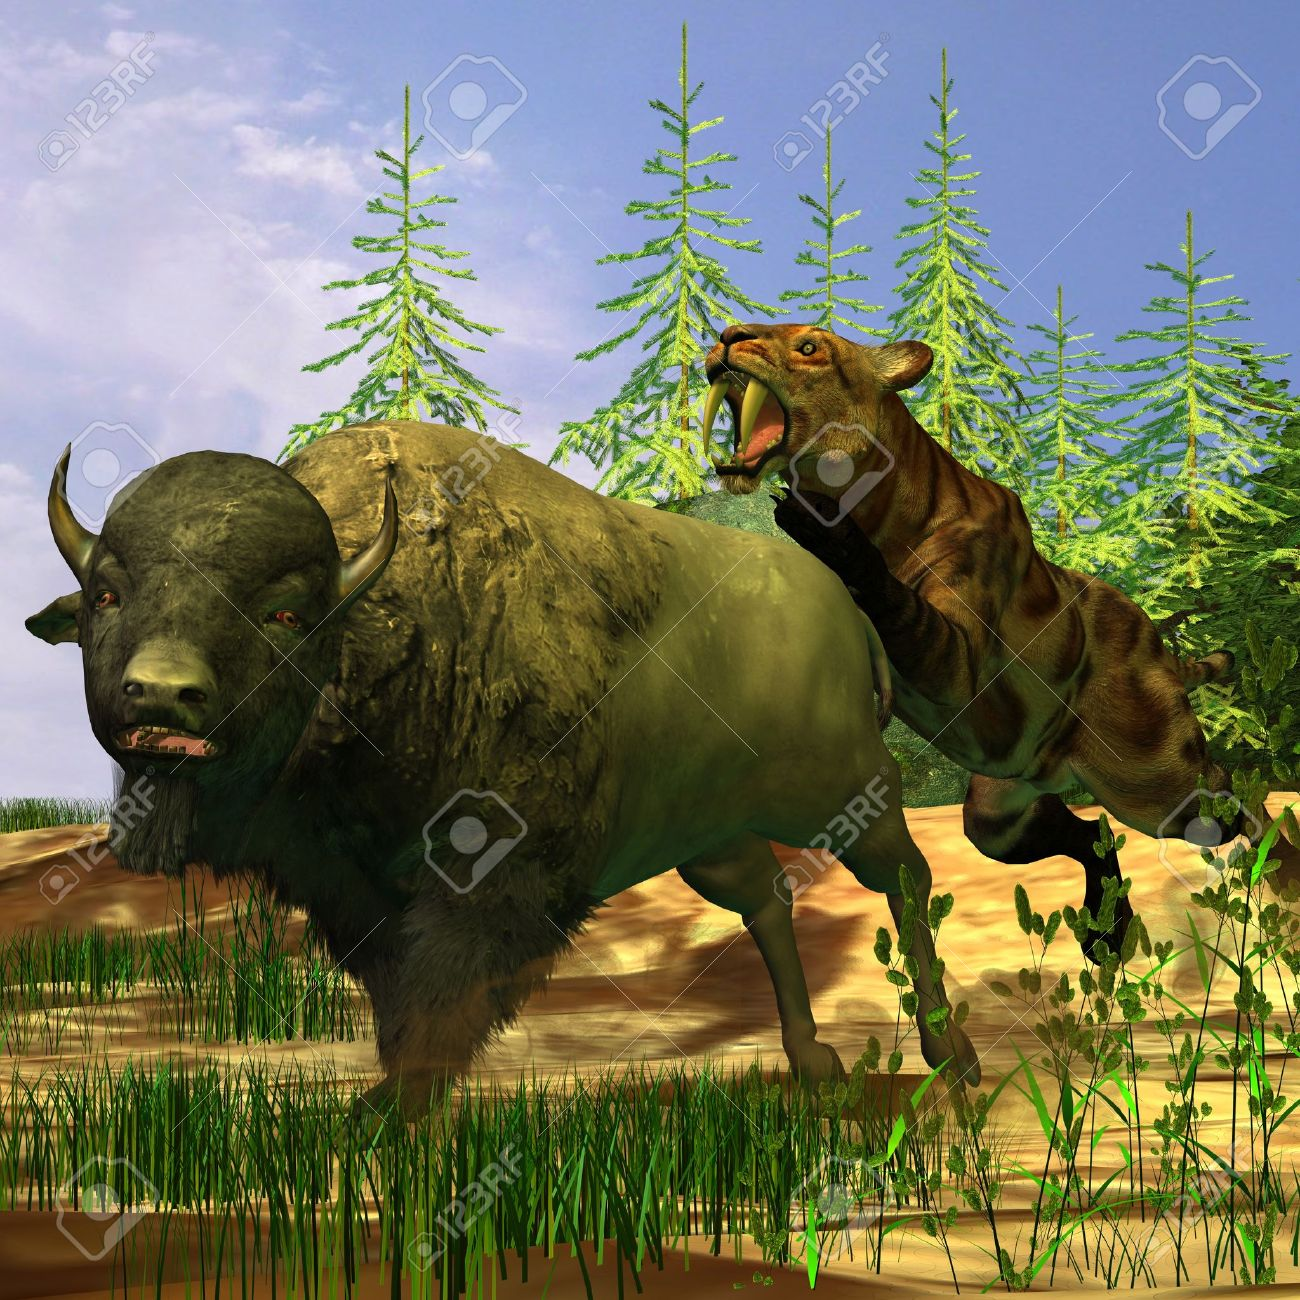 saber tooth tiger stock photos u0026 pictures royalty free saber